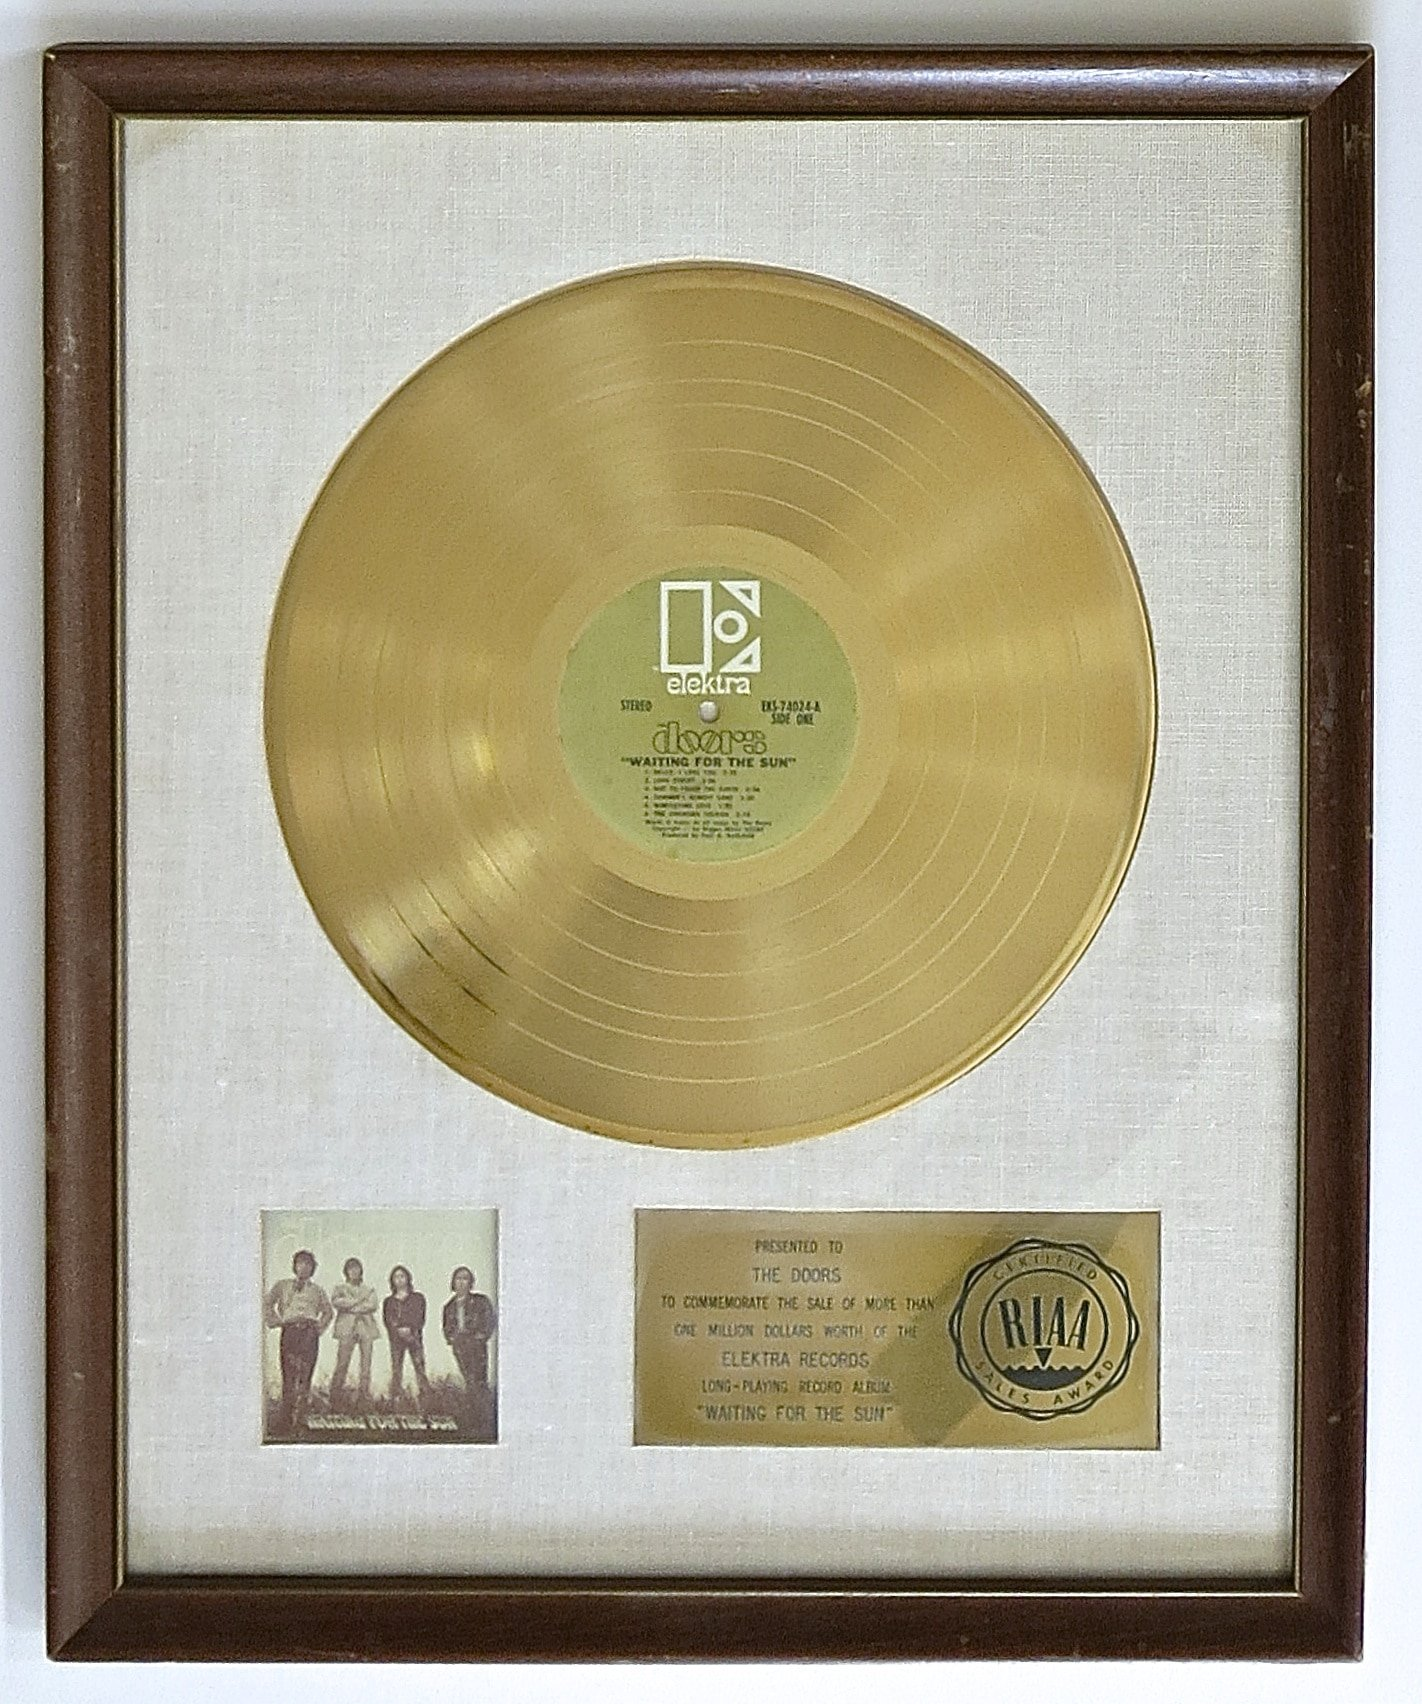 The Doors u2013 White Matte Gold Record Award Presented to The Doors for u201cWaiting For The Sunu201d : doors records - pezcame.com